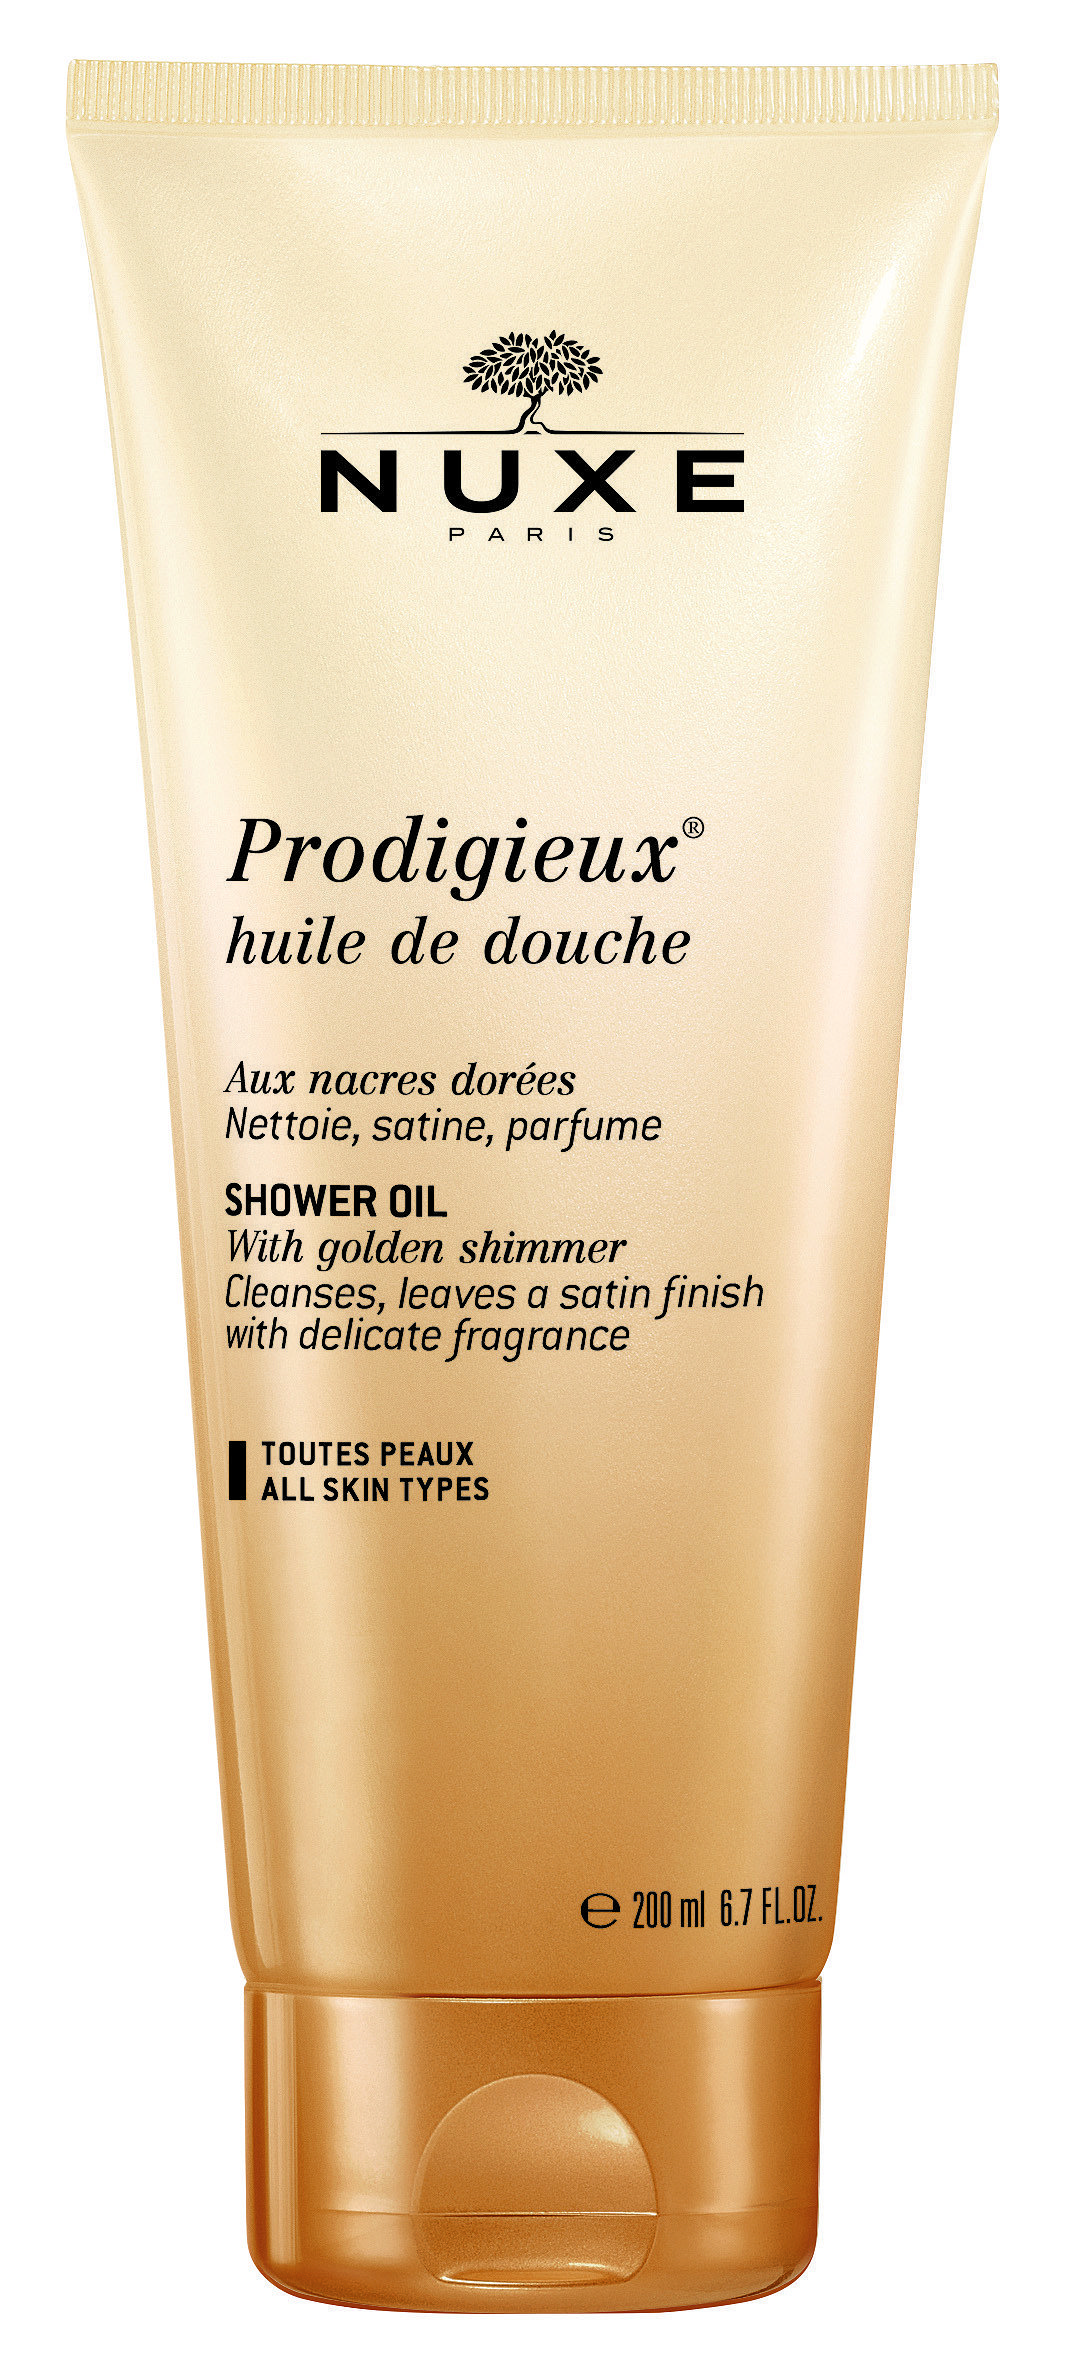 Nuxe huile prodigieuse multi-usage dry oil special edition.